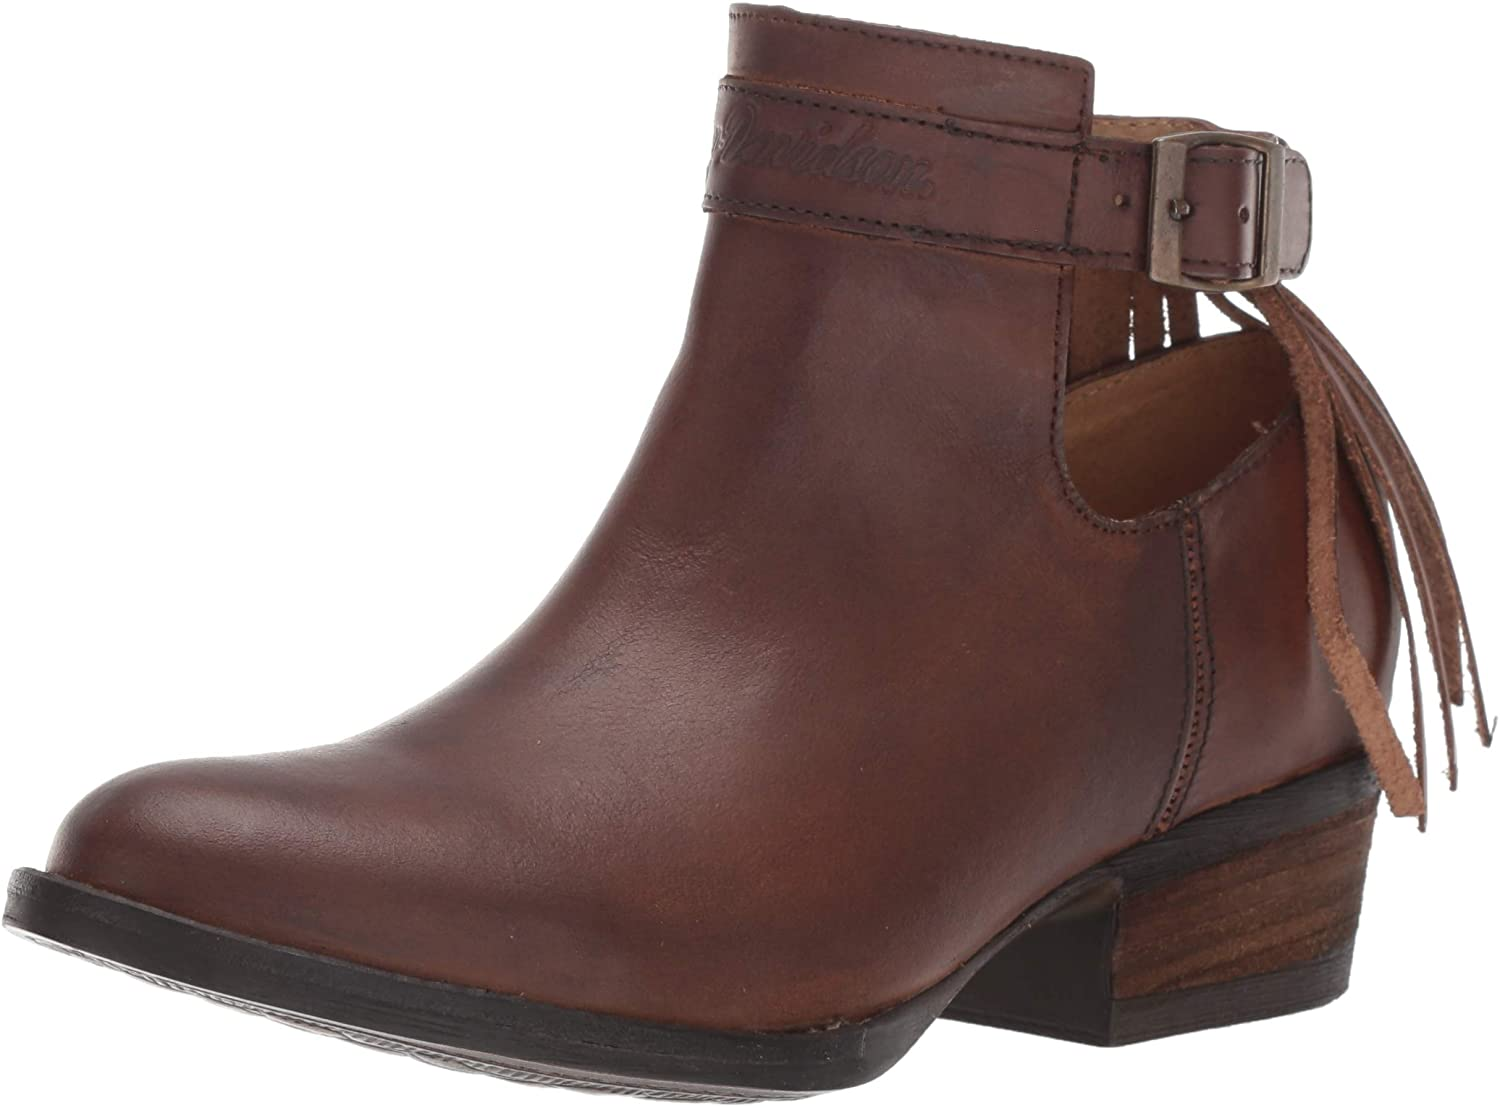 HARLEY-DAVIDSON FOOTWEAR Women's Amory Boot, Brown, 08.5 M US